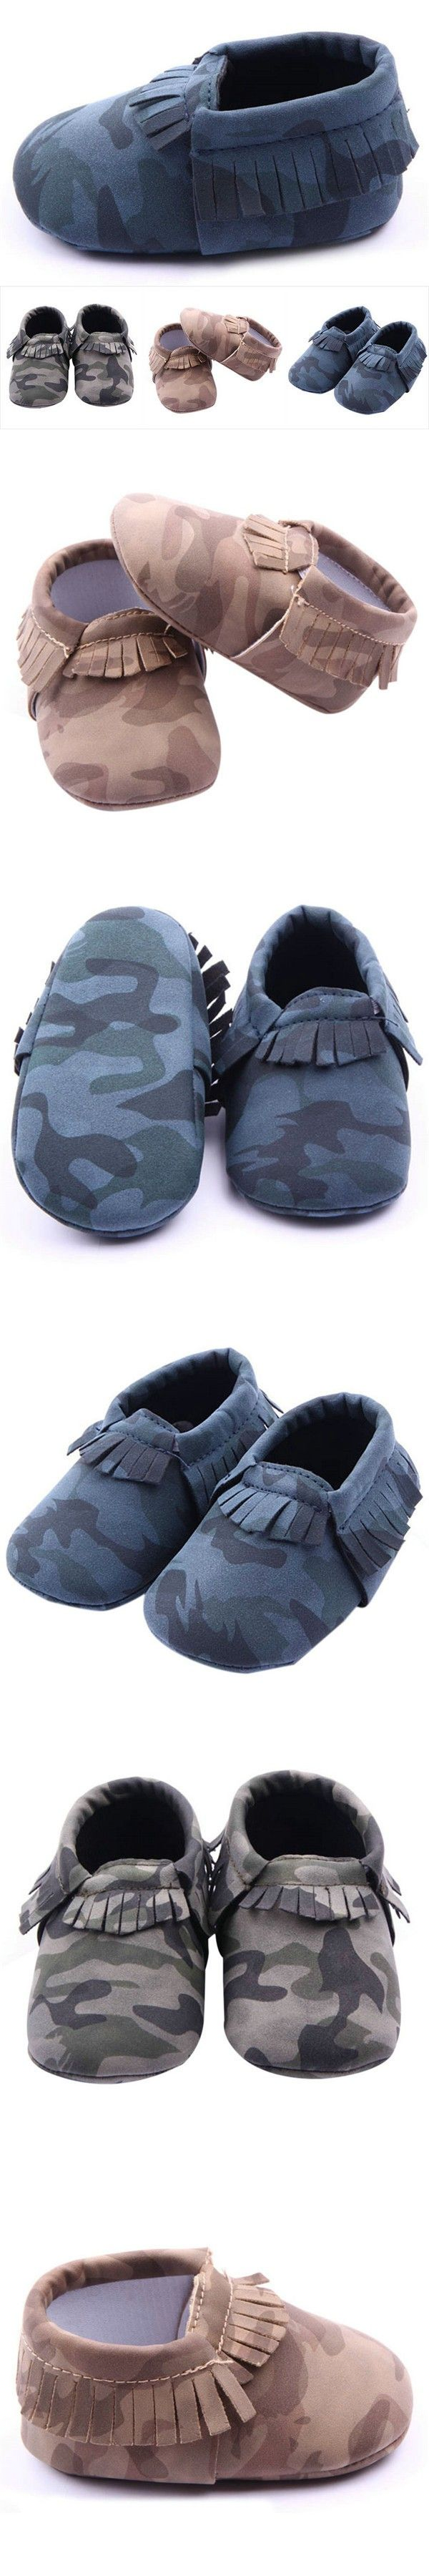 Infant Girls Boys Camo Baby Shoes Toddler Tassel Soft Slippers Shoes 0-12M